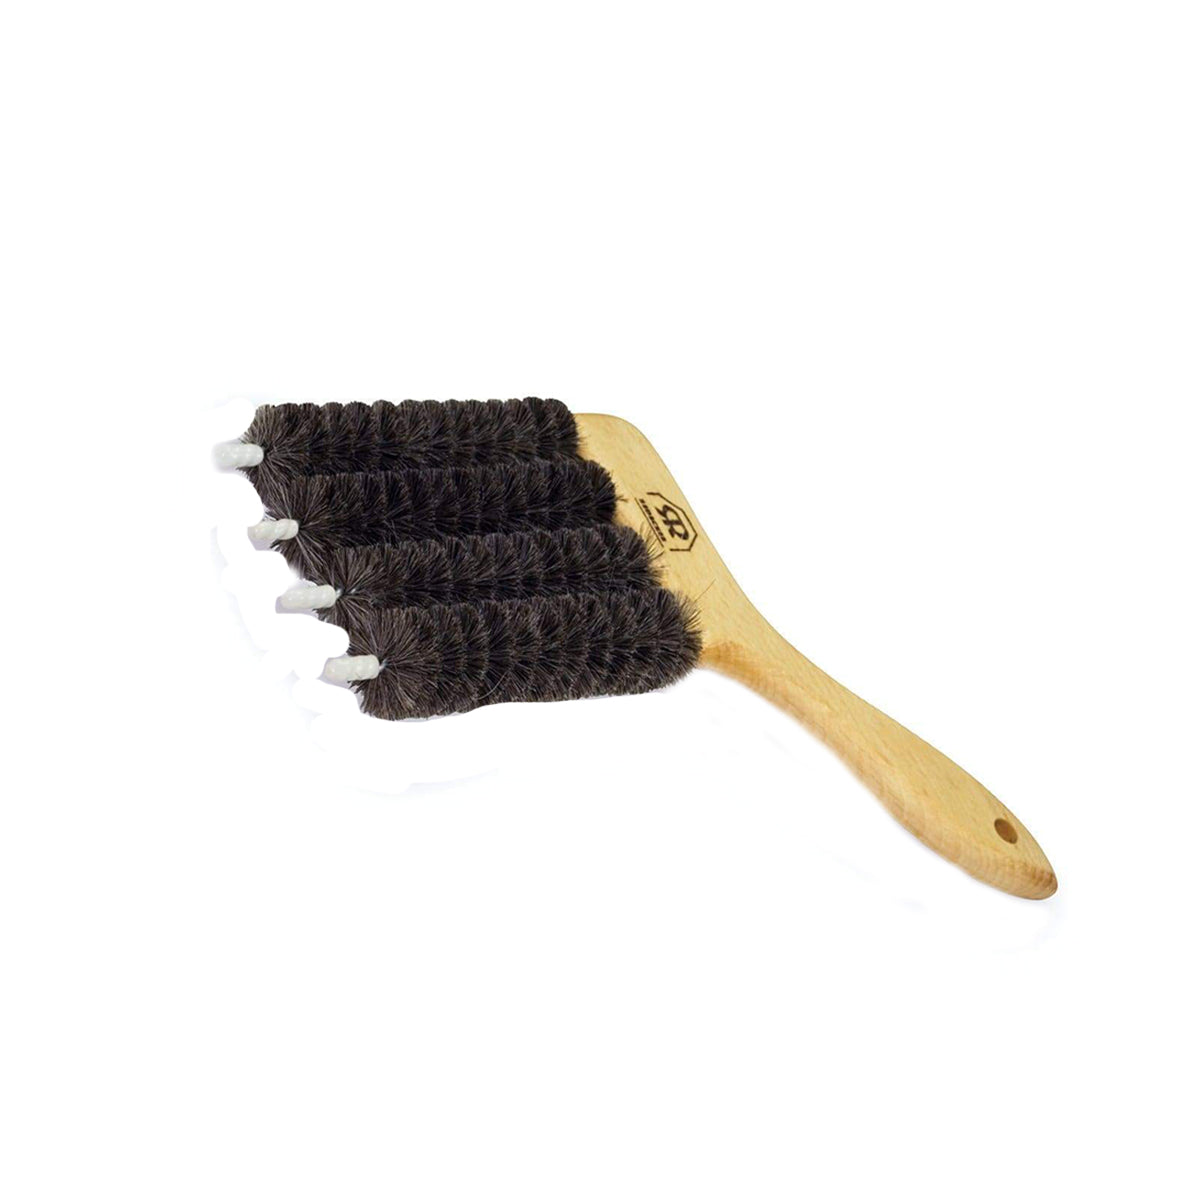 Venetian Blind Cleaning Brush